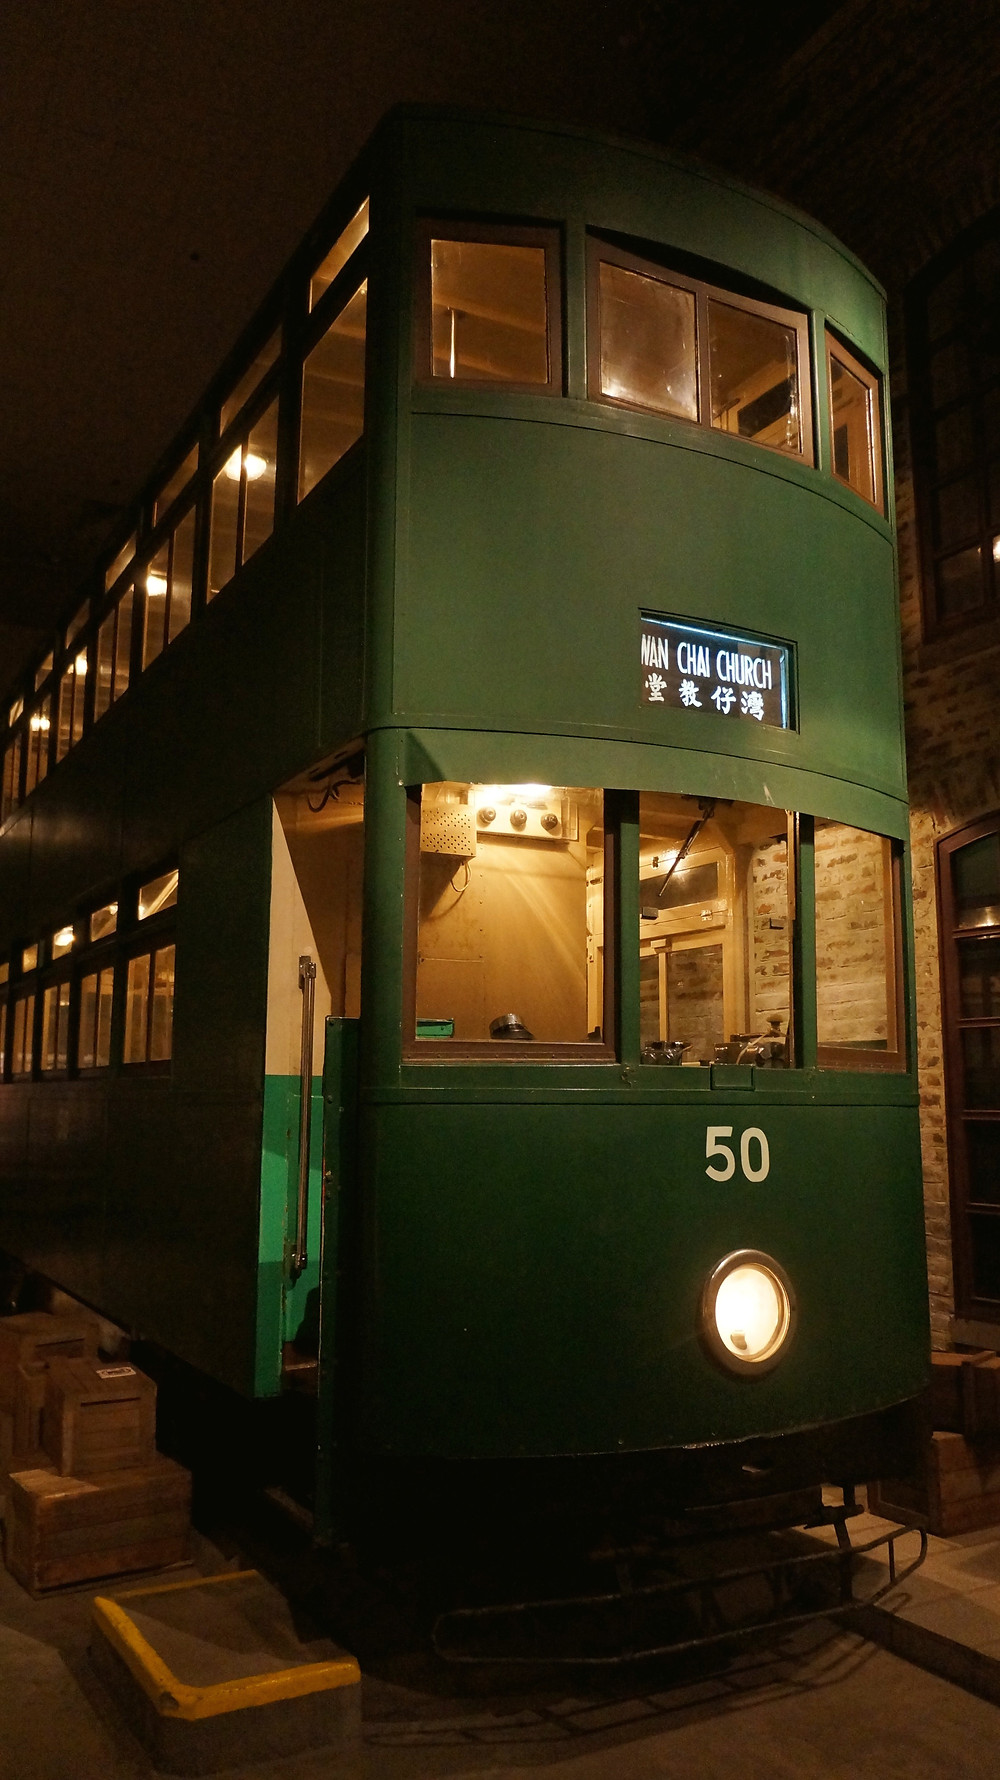 The famous ding ding tram located at Hong Kong Museum of History